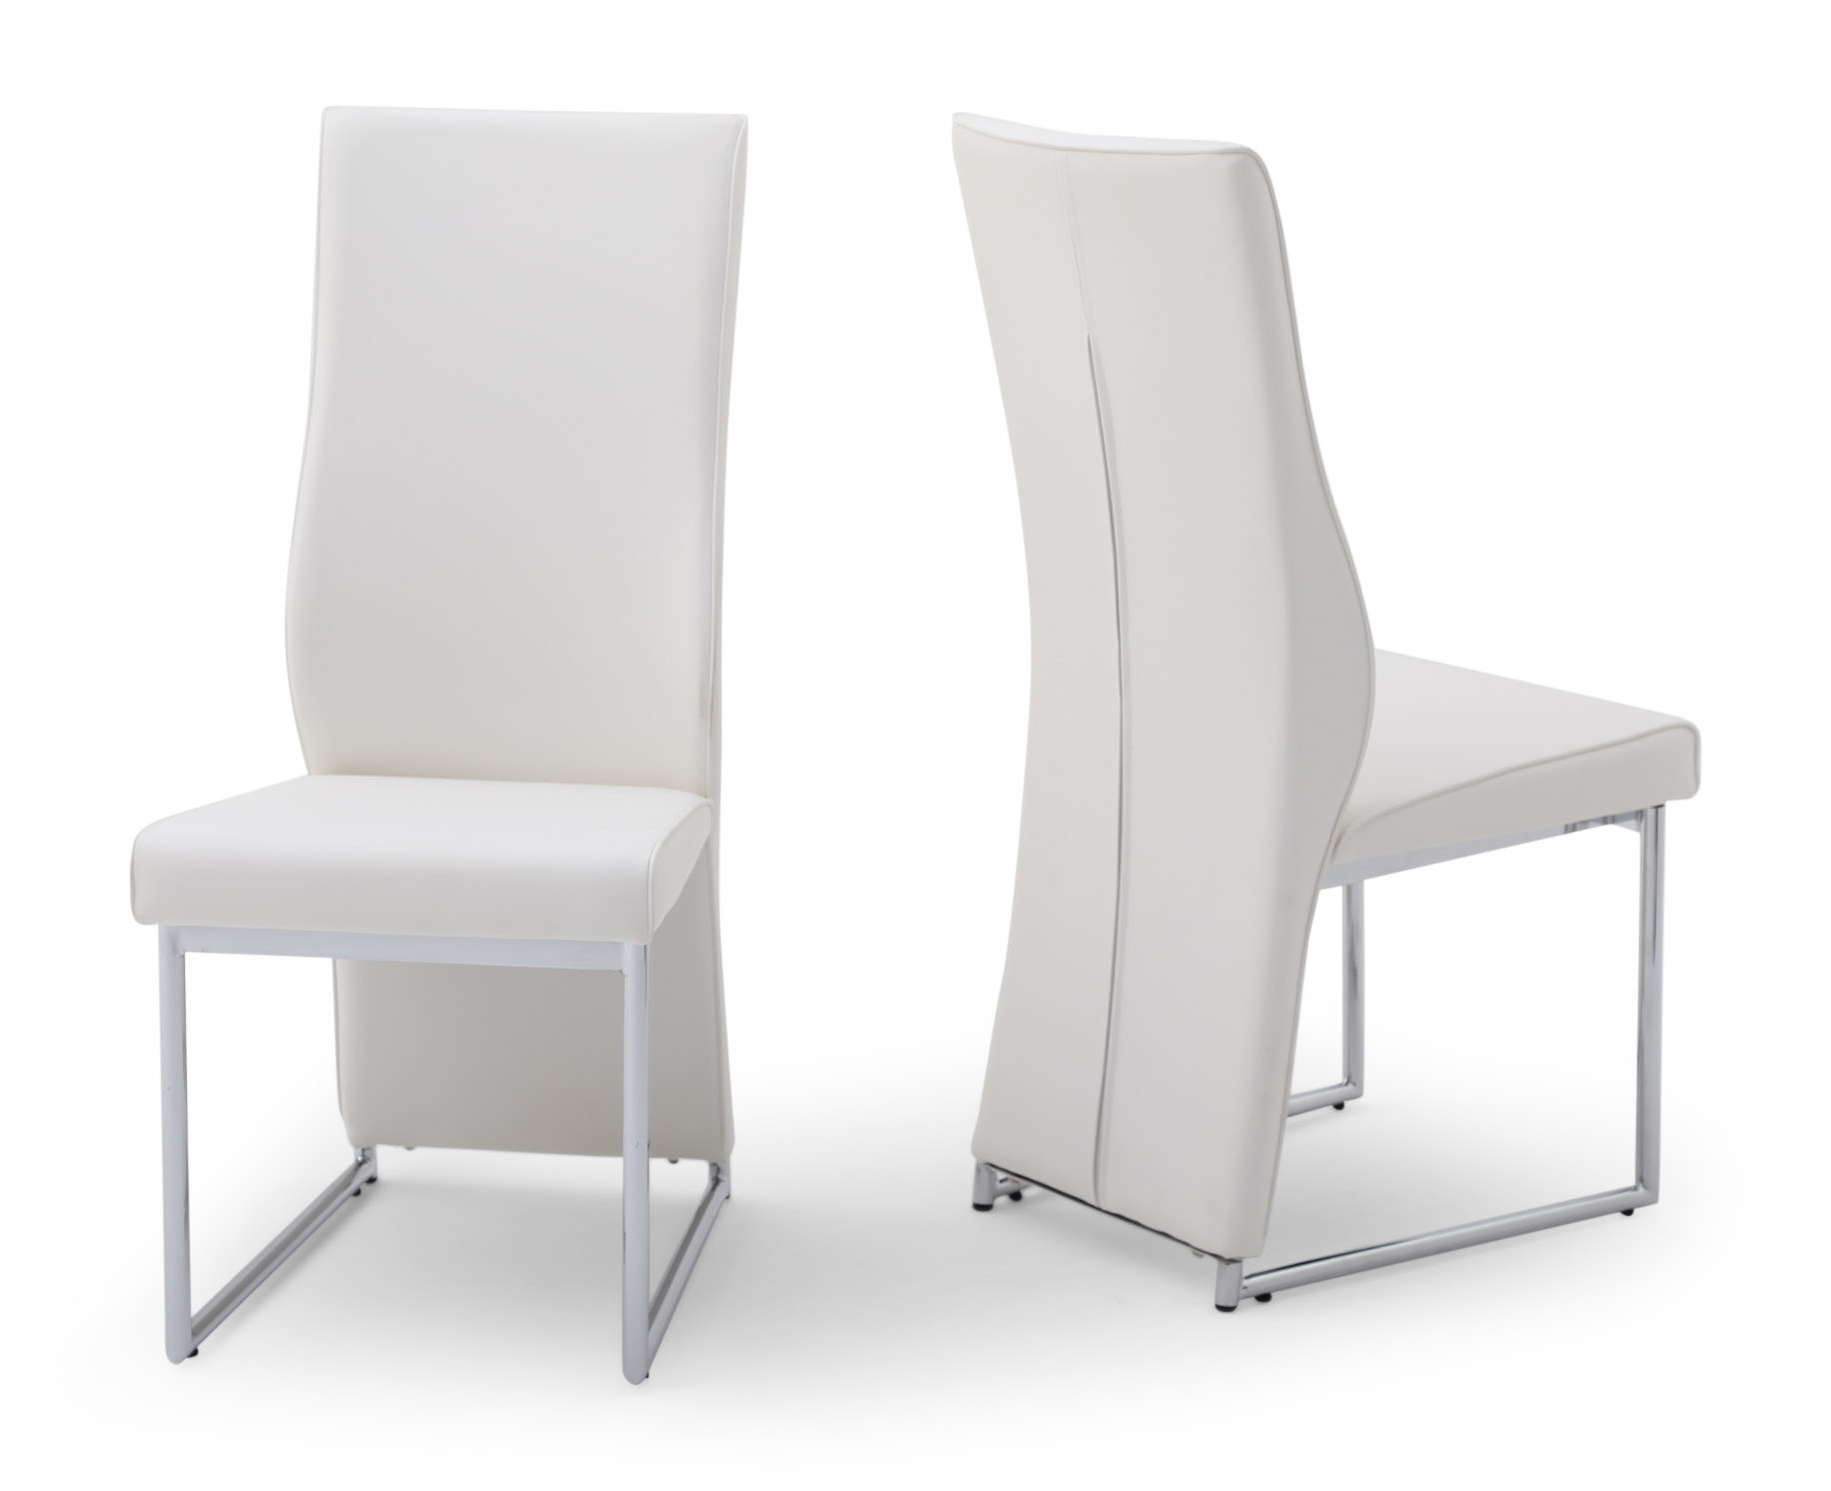 Imperial White High Back Leather Dining Chair With Most Popular White Leather Dining Chairs (Gallery 7 of 25)